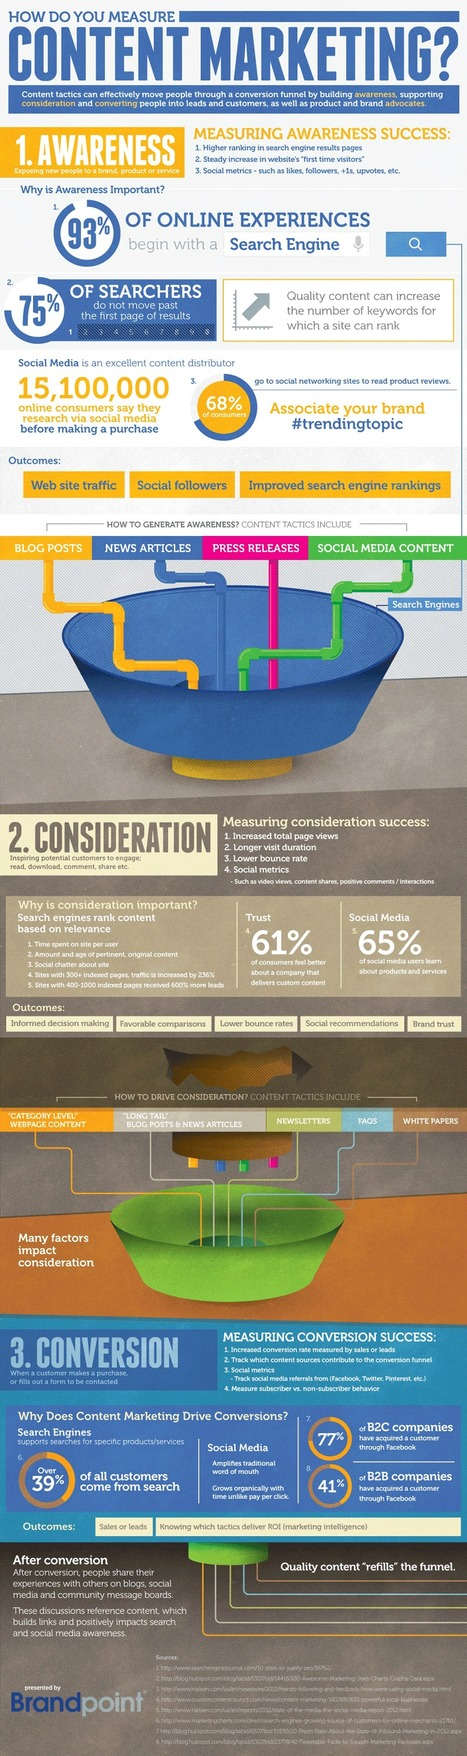 How to Measure Content Marketing Success | Infographic | Wepyirang | Scoop.it